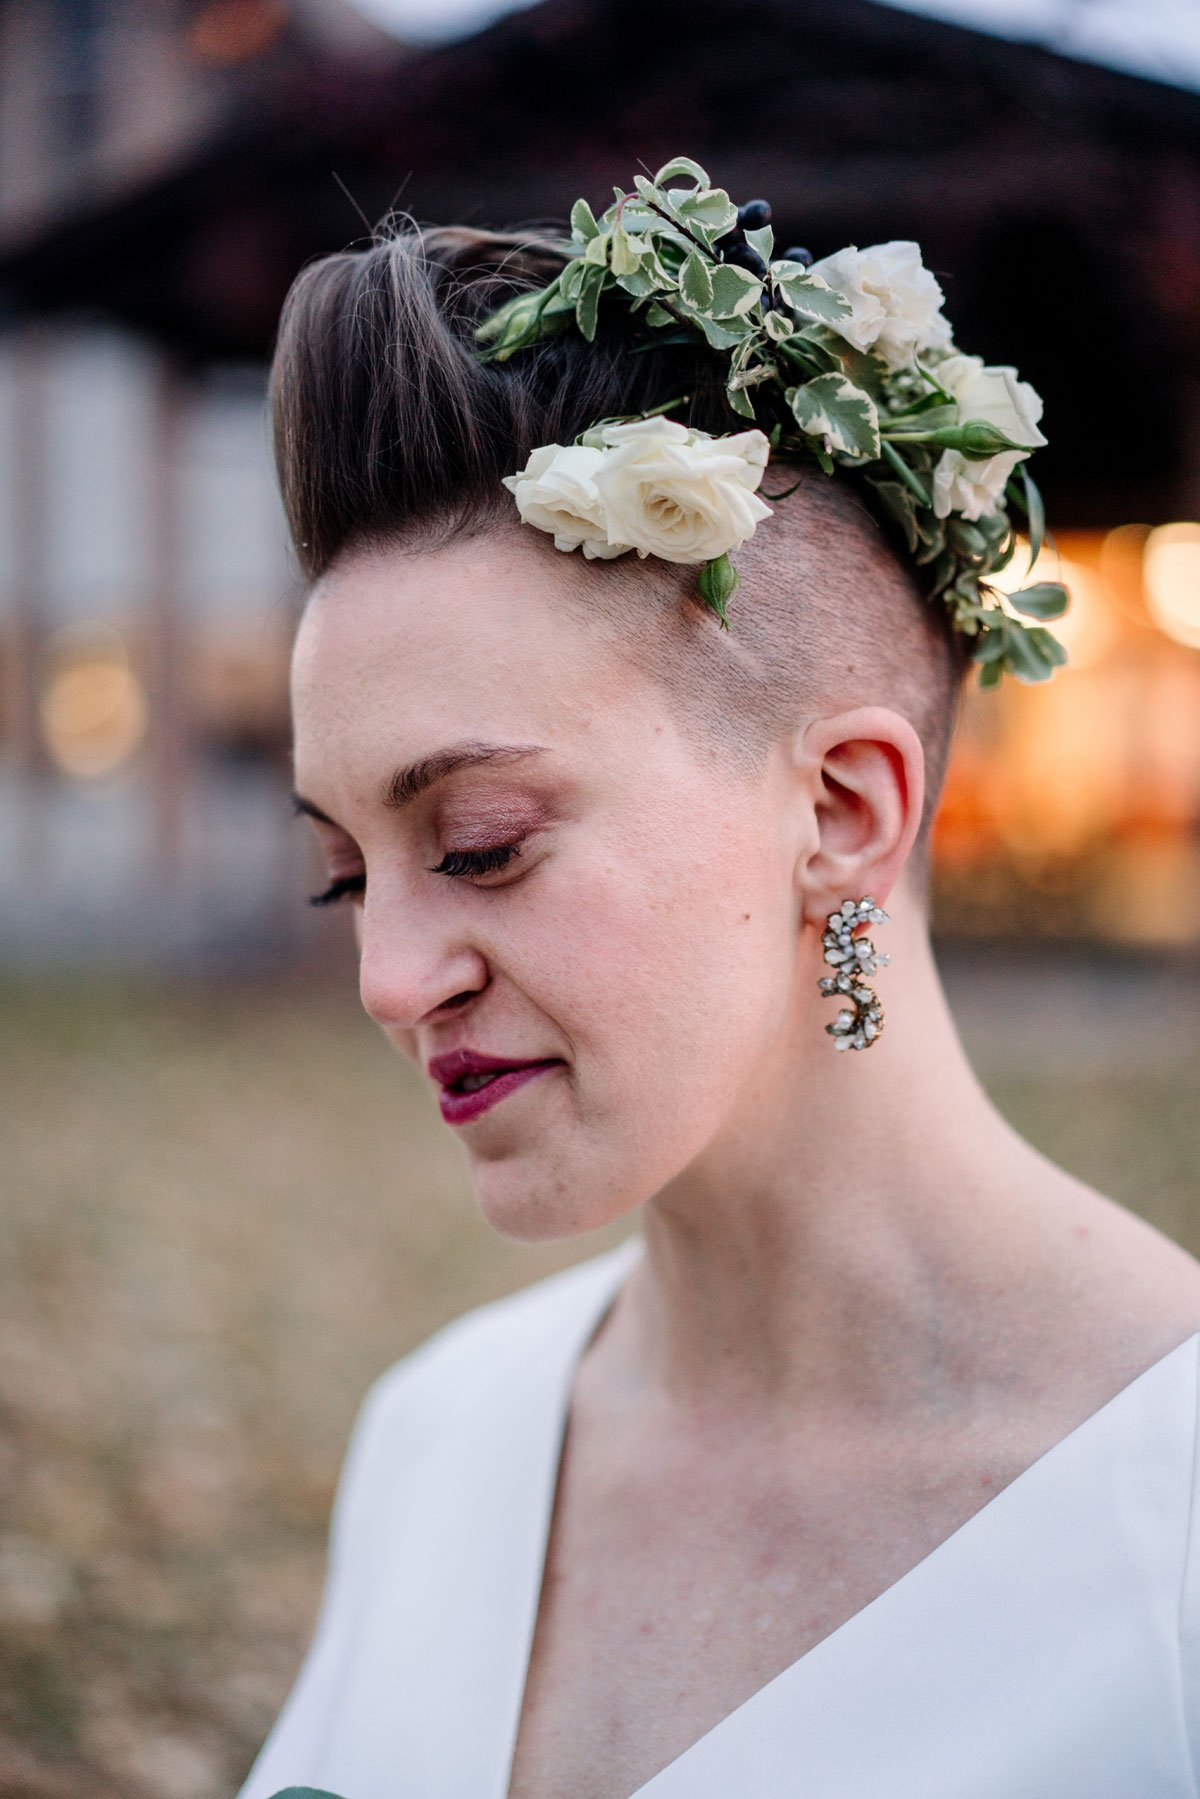 bride with shaved head and flowers in her hair for small wedding with restaurant st paul mn